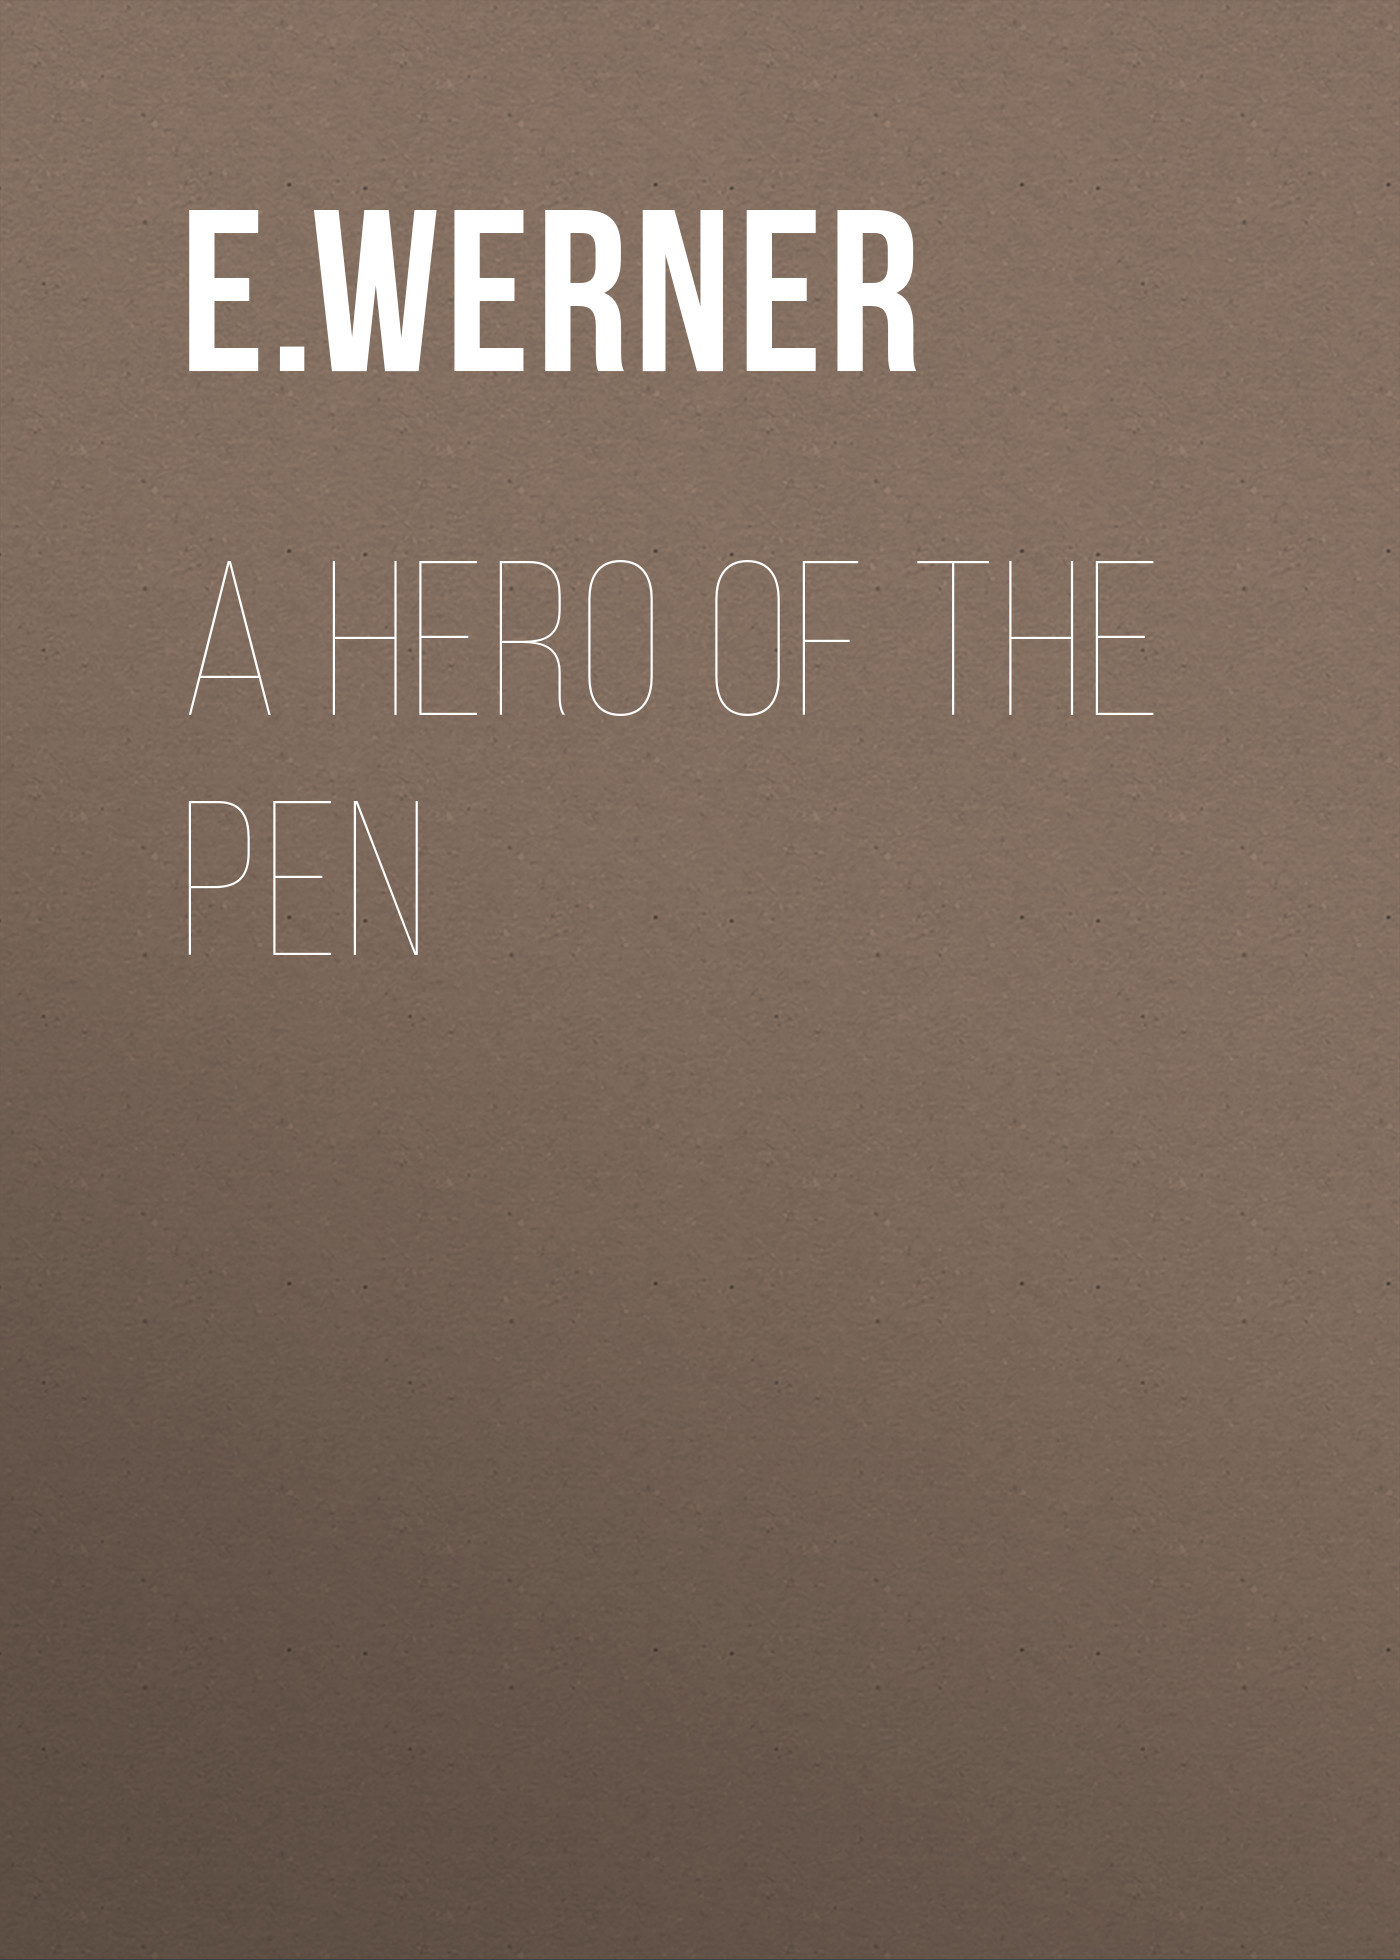 E. Werner A Hero of the Pen bucket shaped straw tote bag